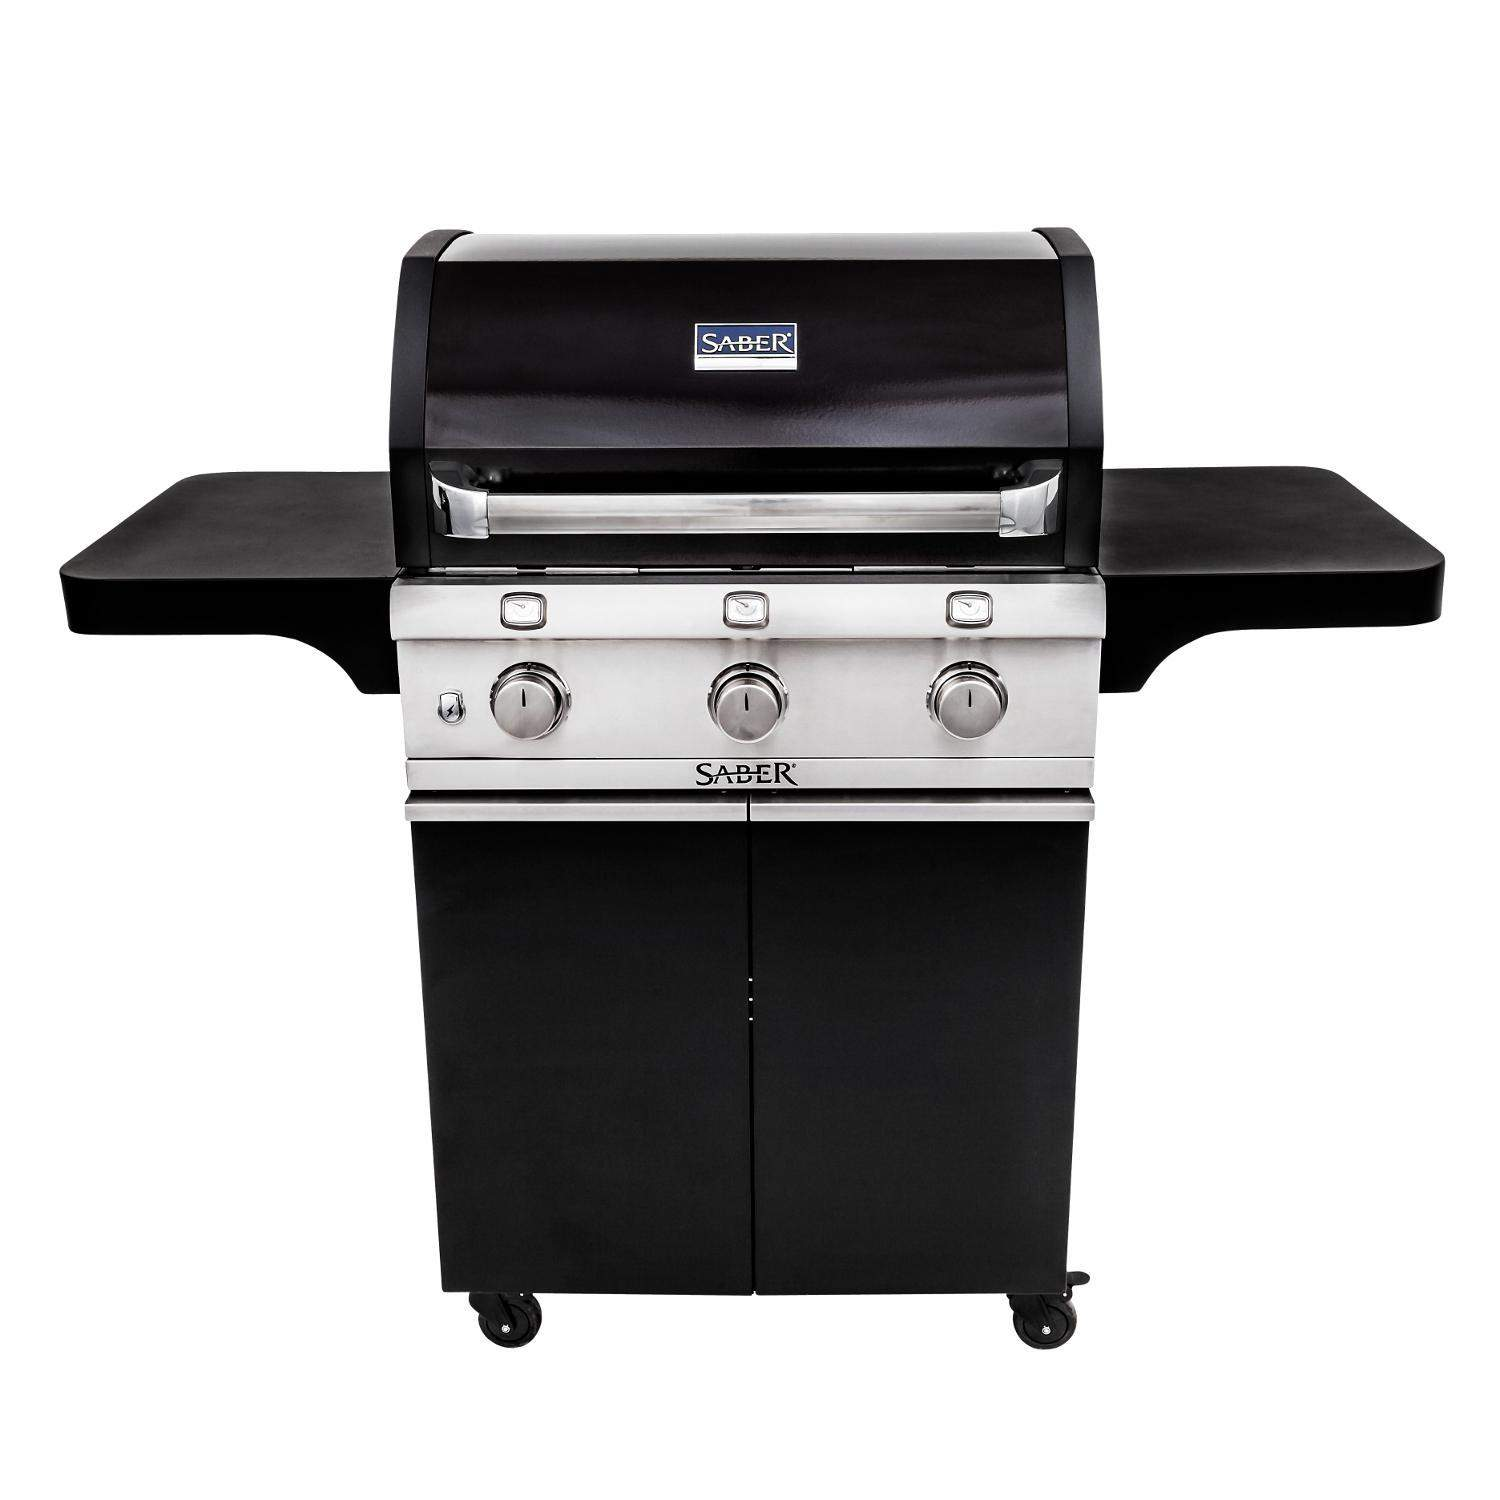 Saber Cast Black 500 32 Inch 3 Burner Infrared Propane Gas Grill R50cc0617 Gas Charcoal Grill Propane Gas Grill Grilling